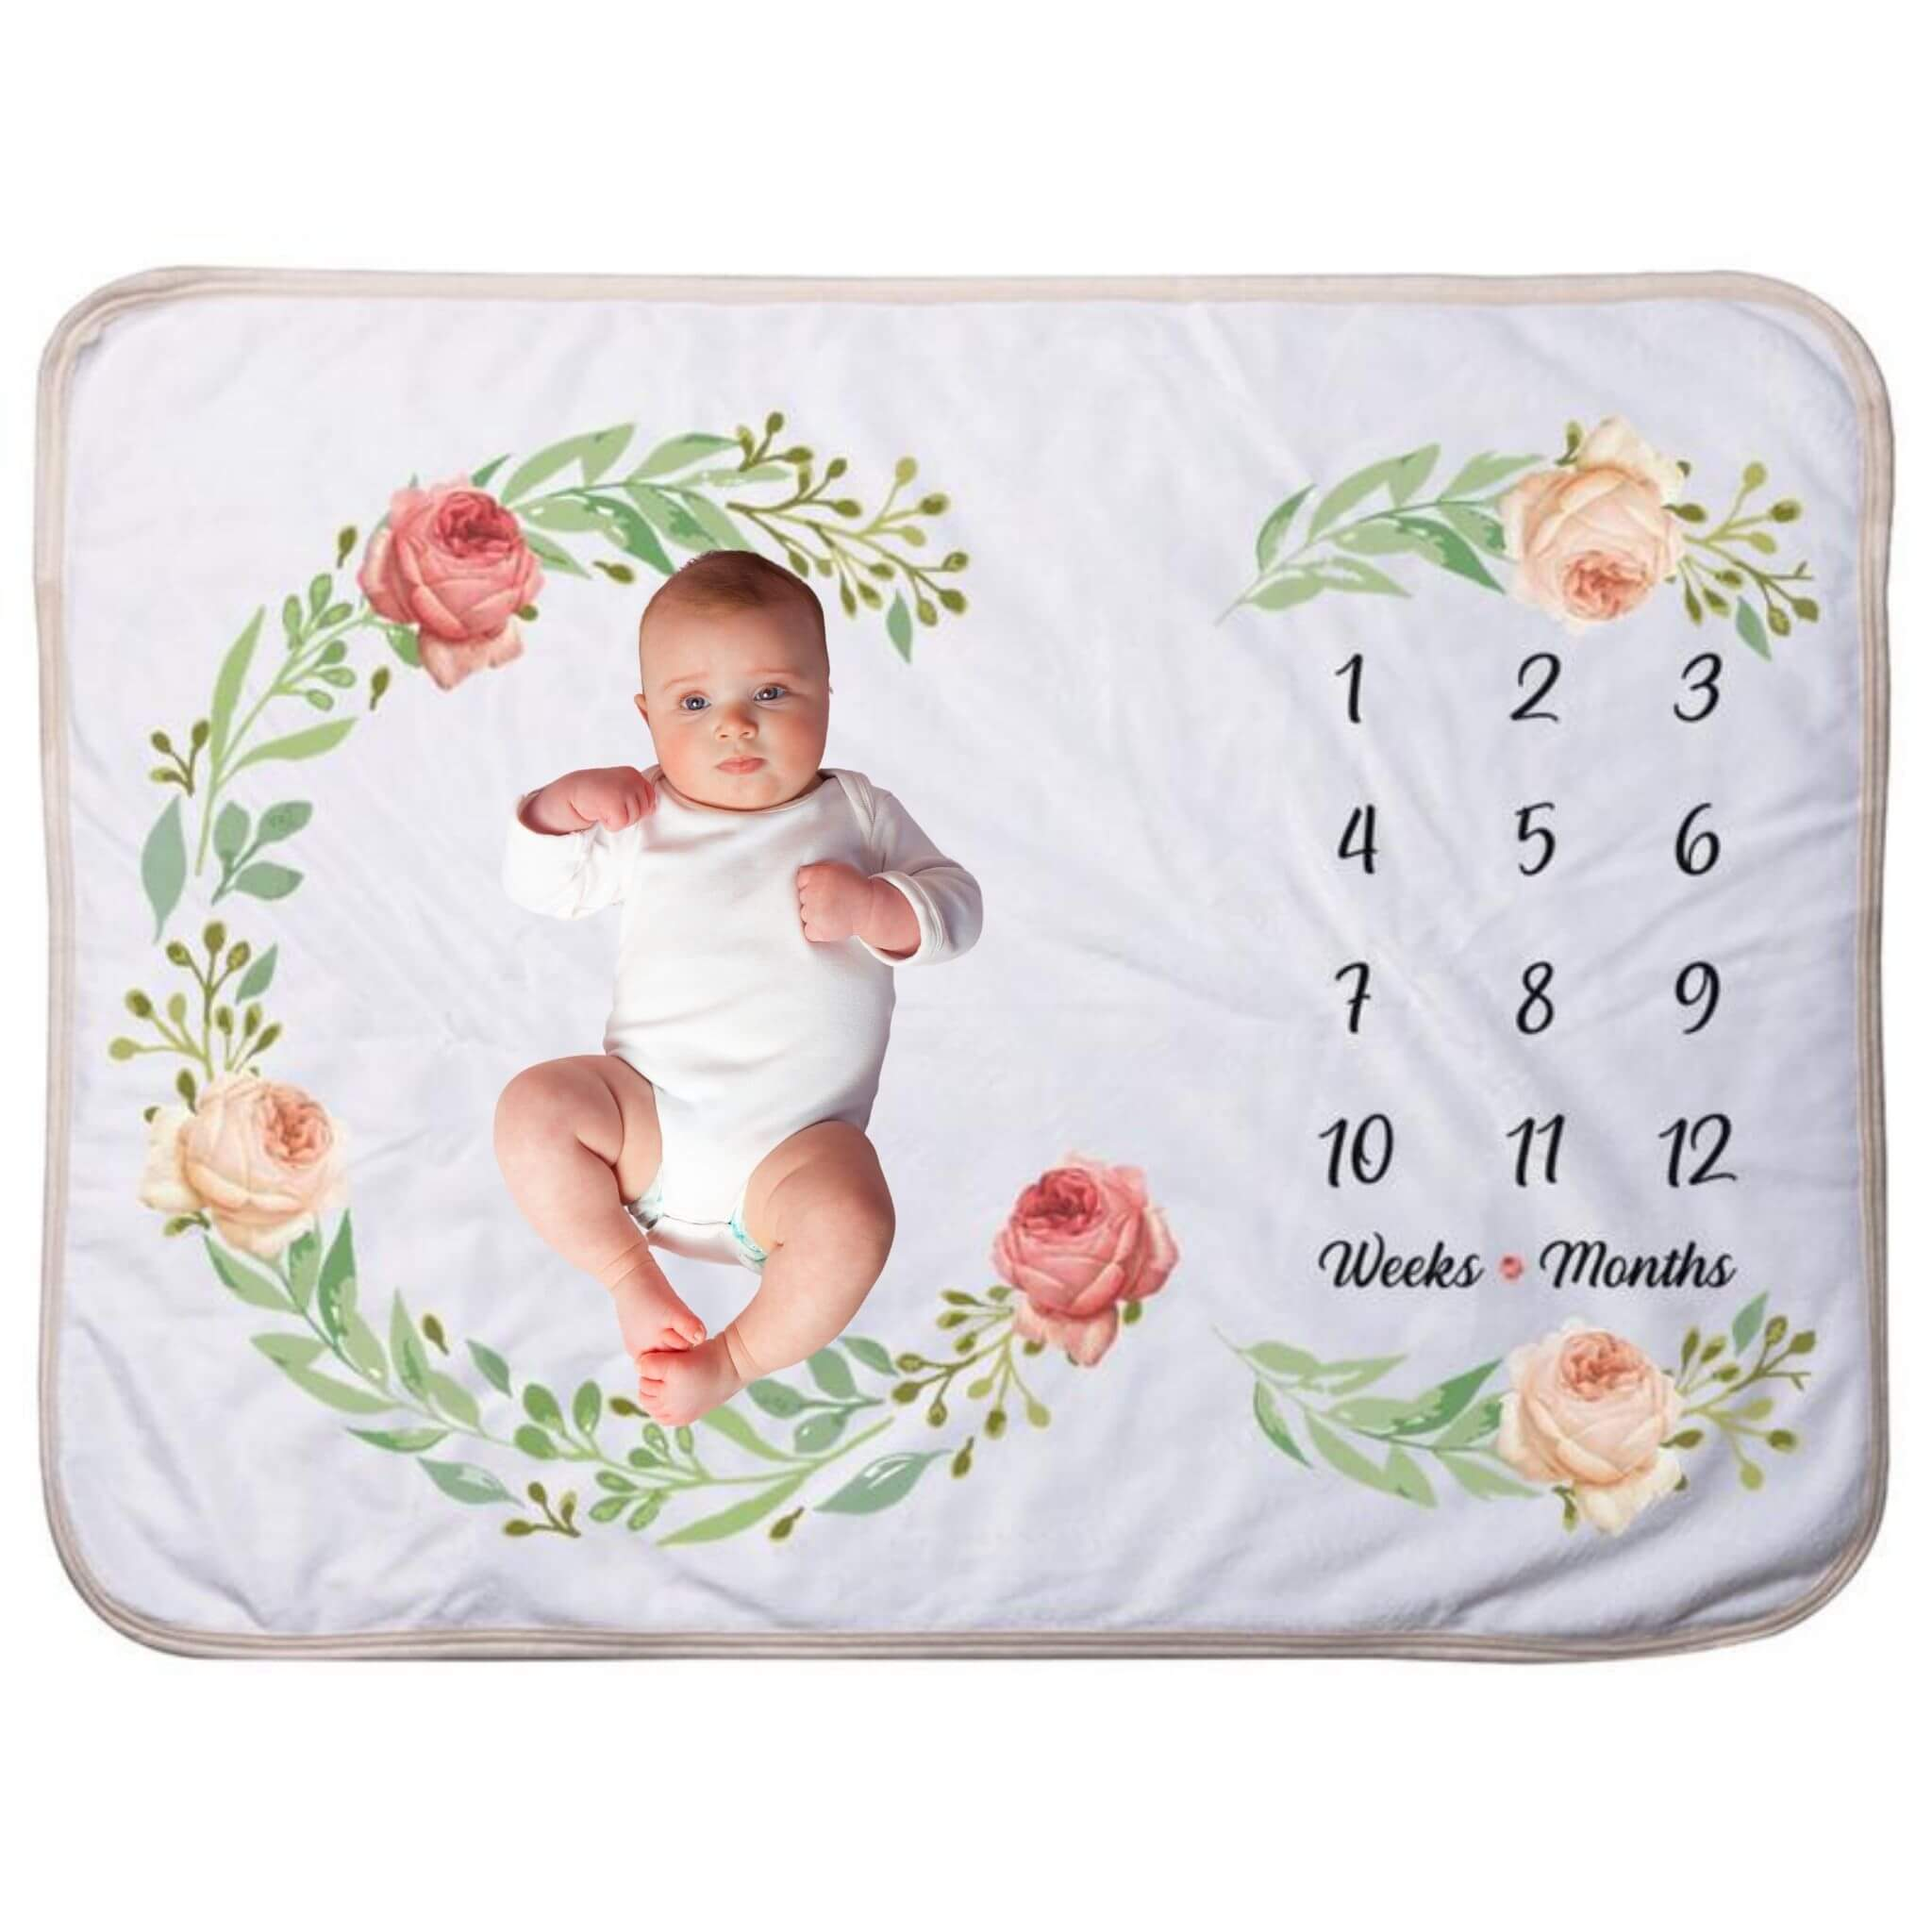 baby picture on a milestone blanket with floral